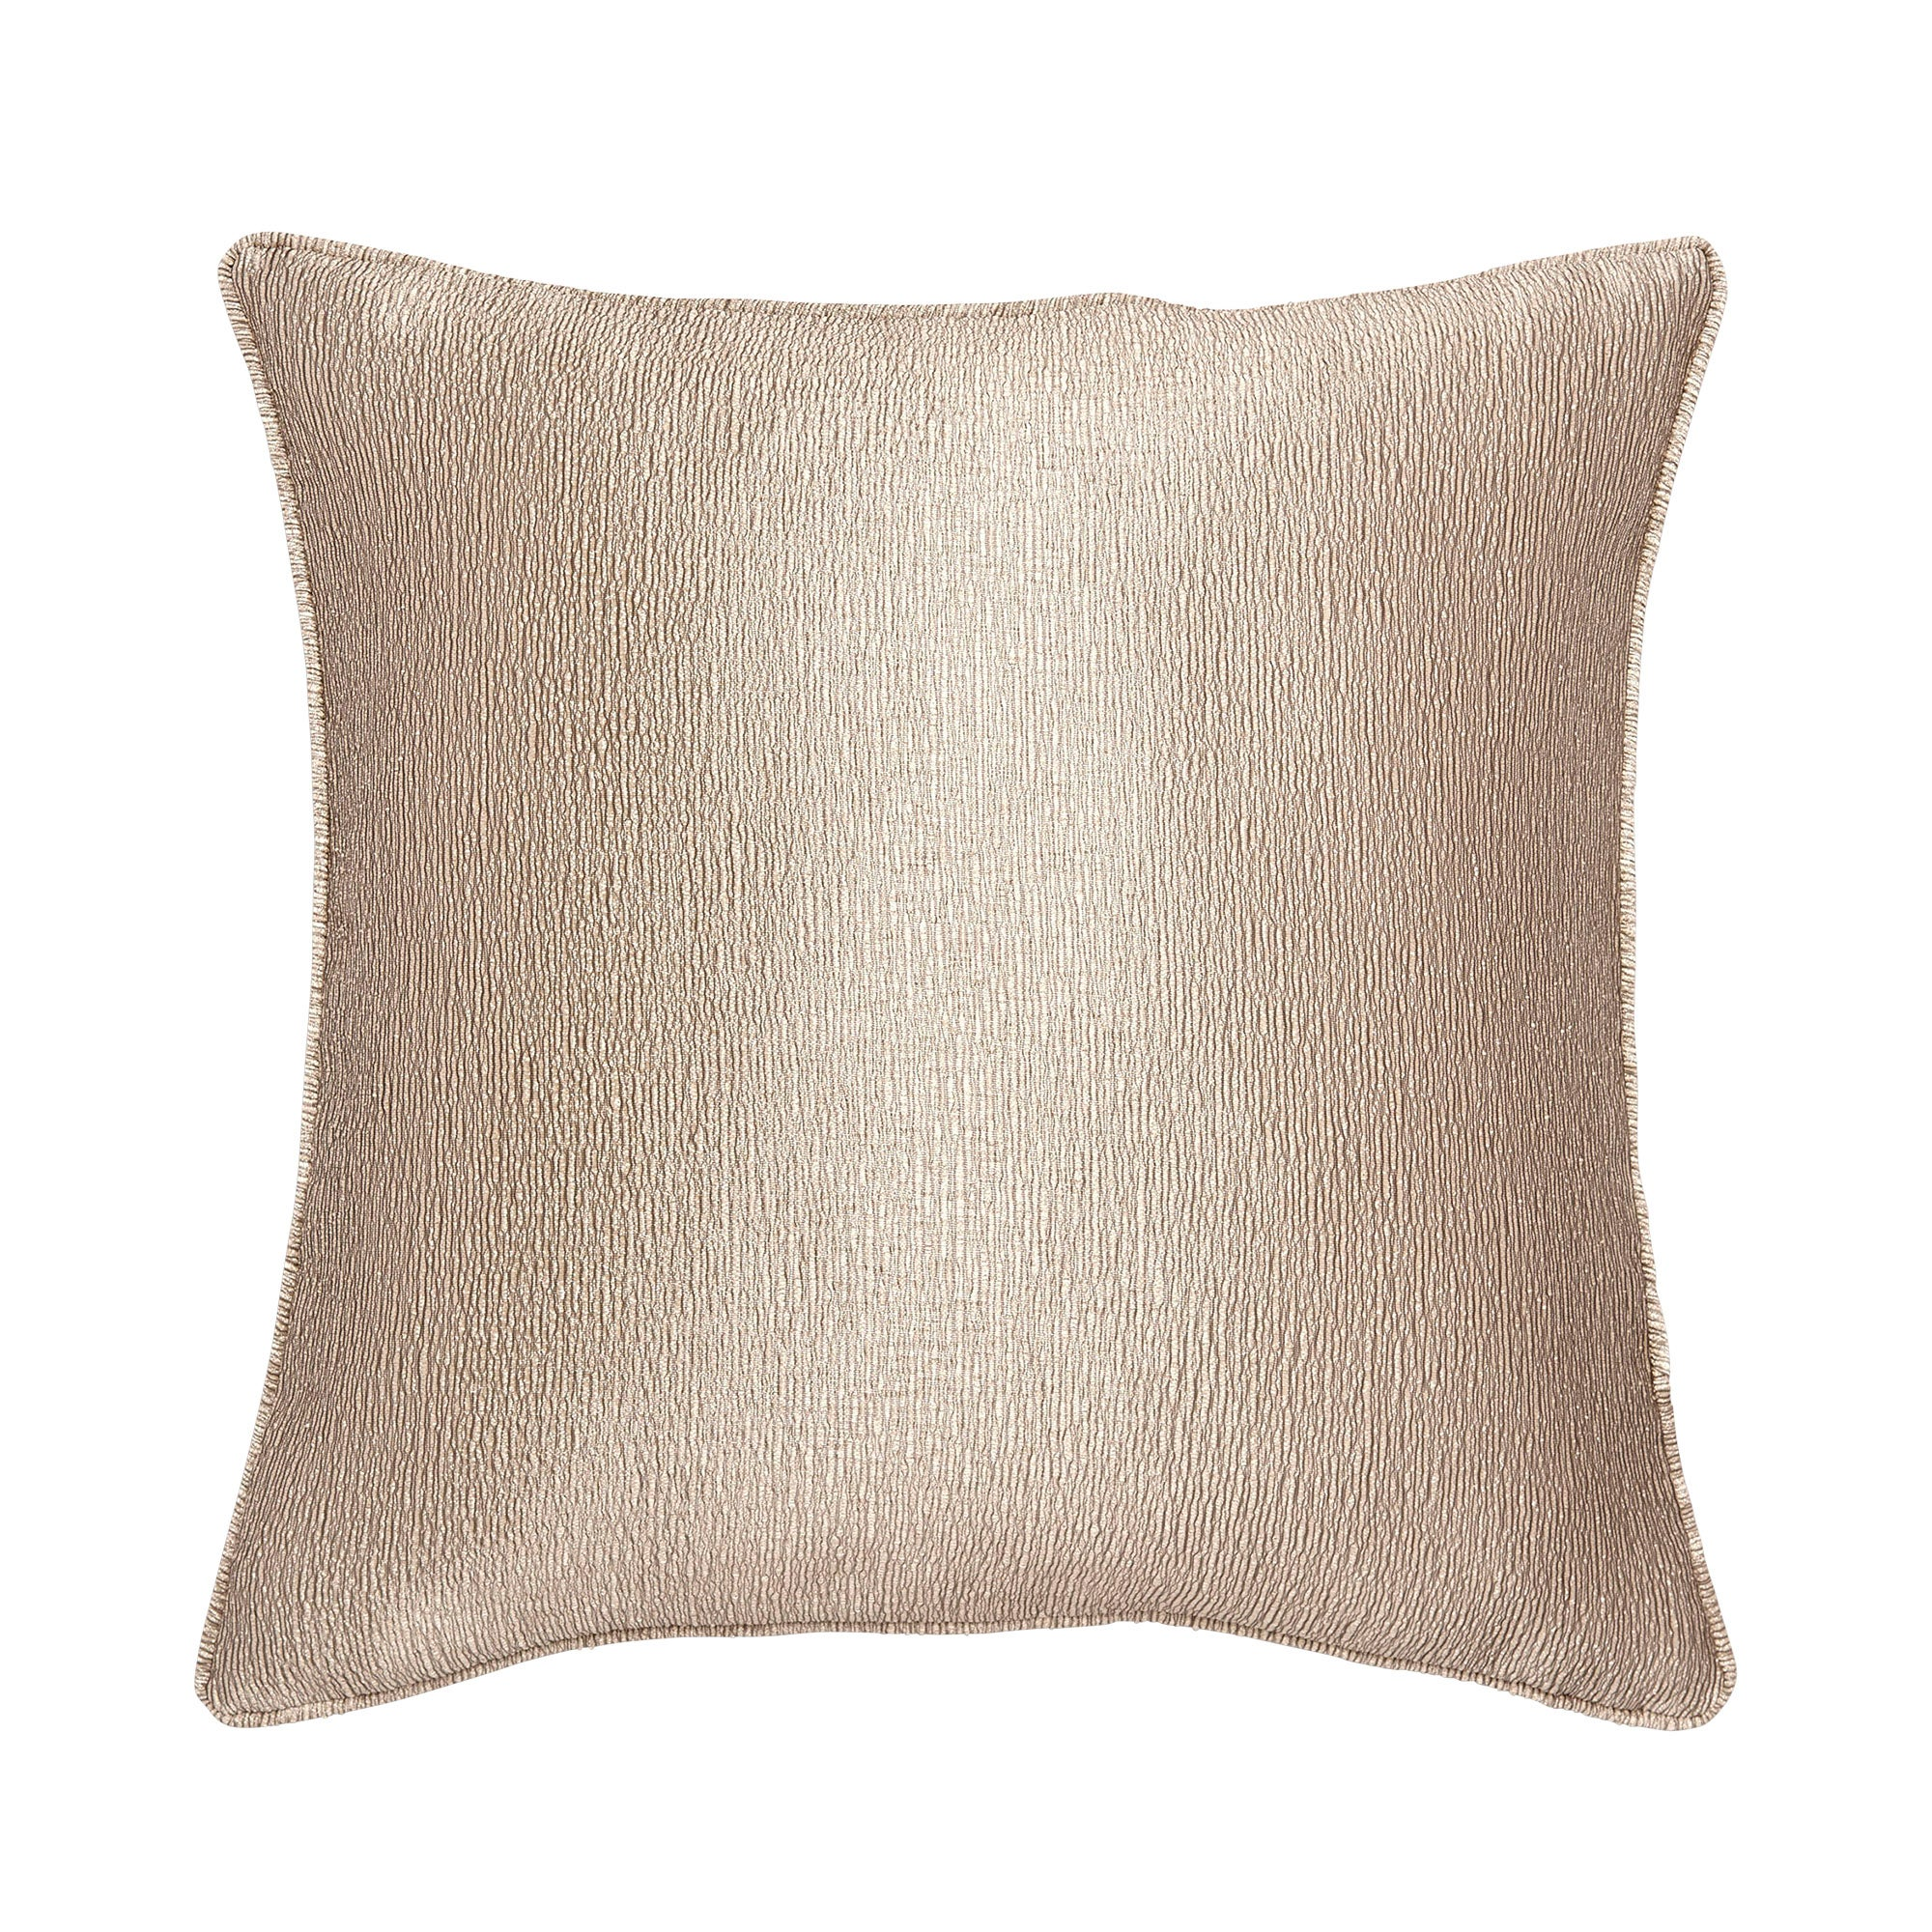 Metallic Crinkle Cushion